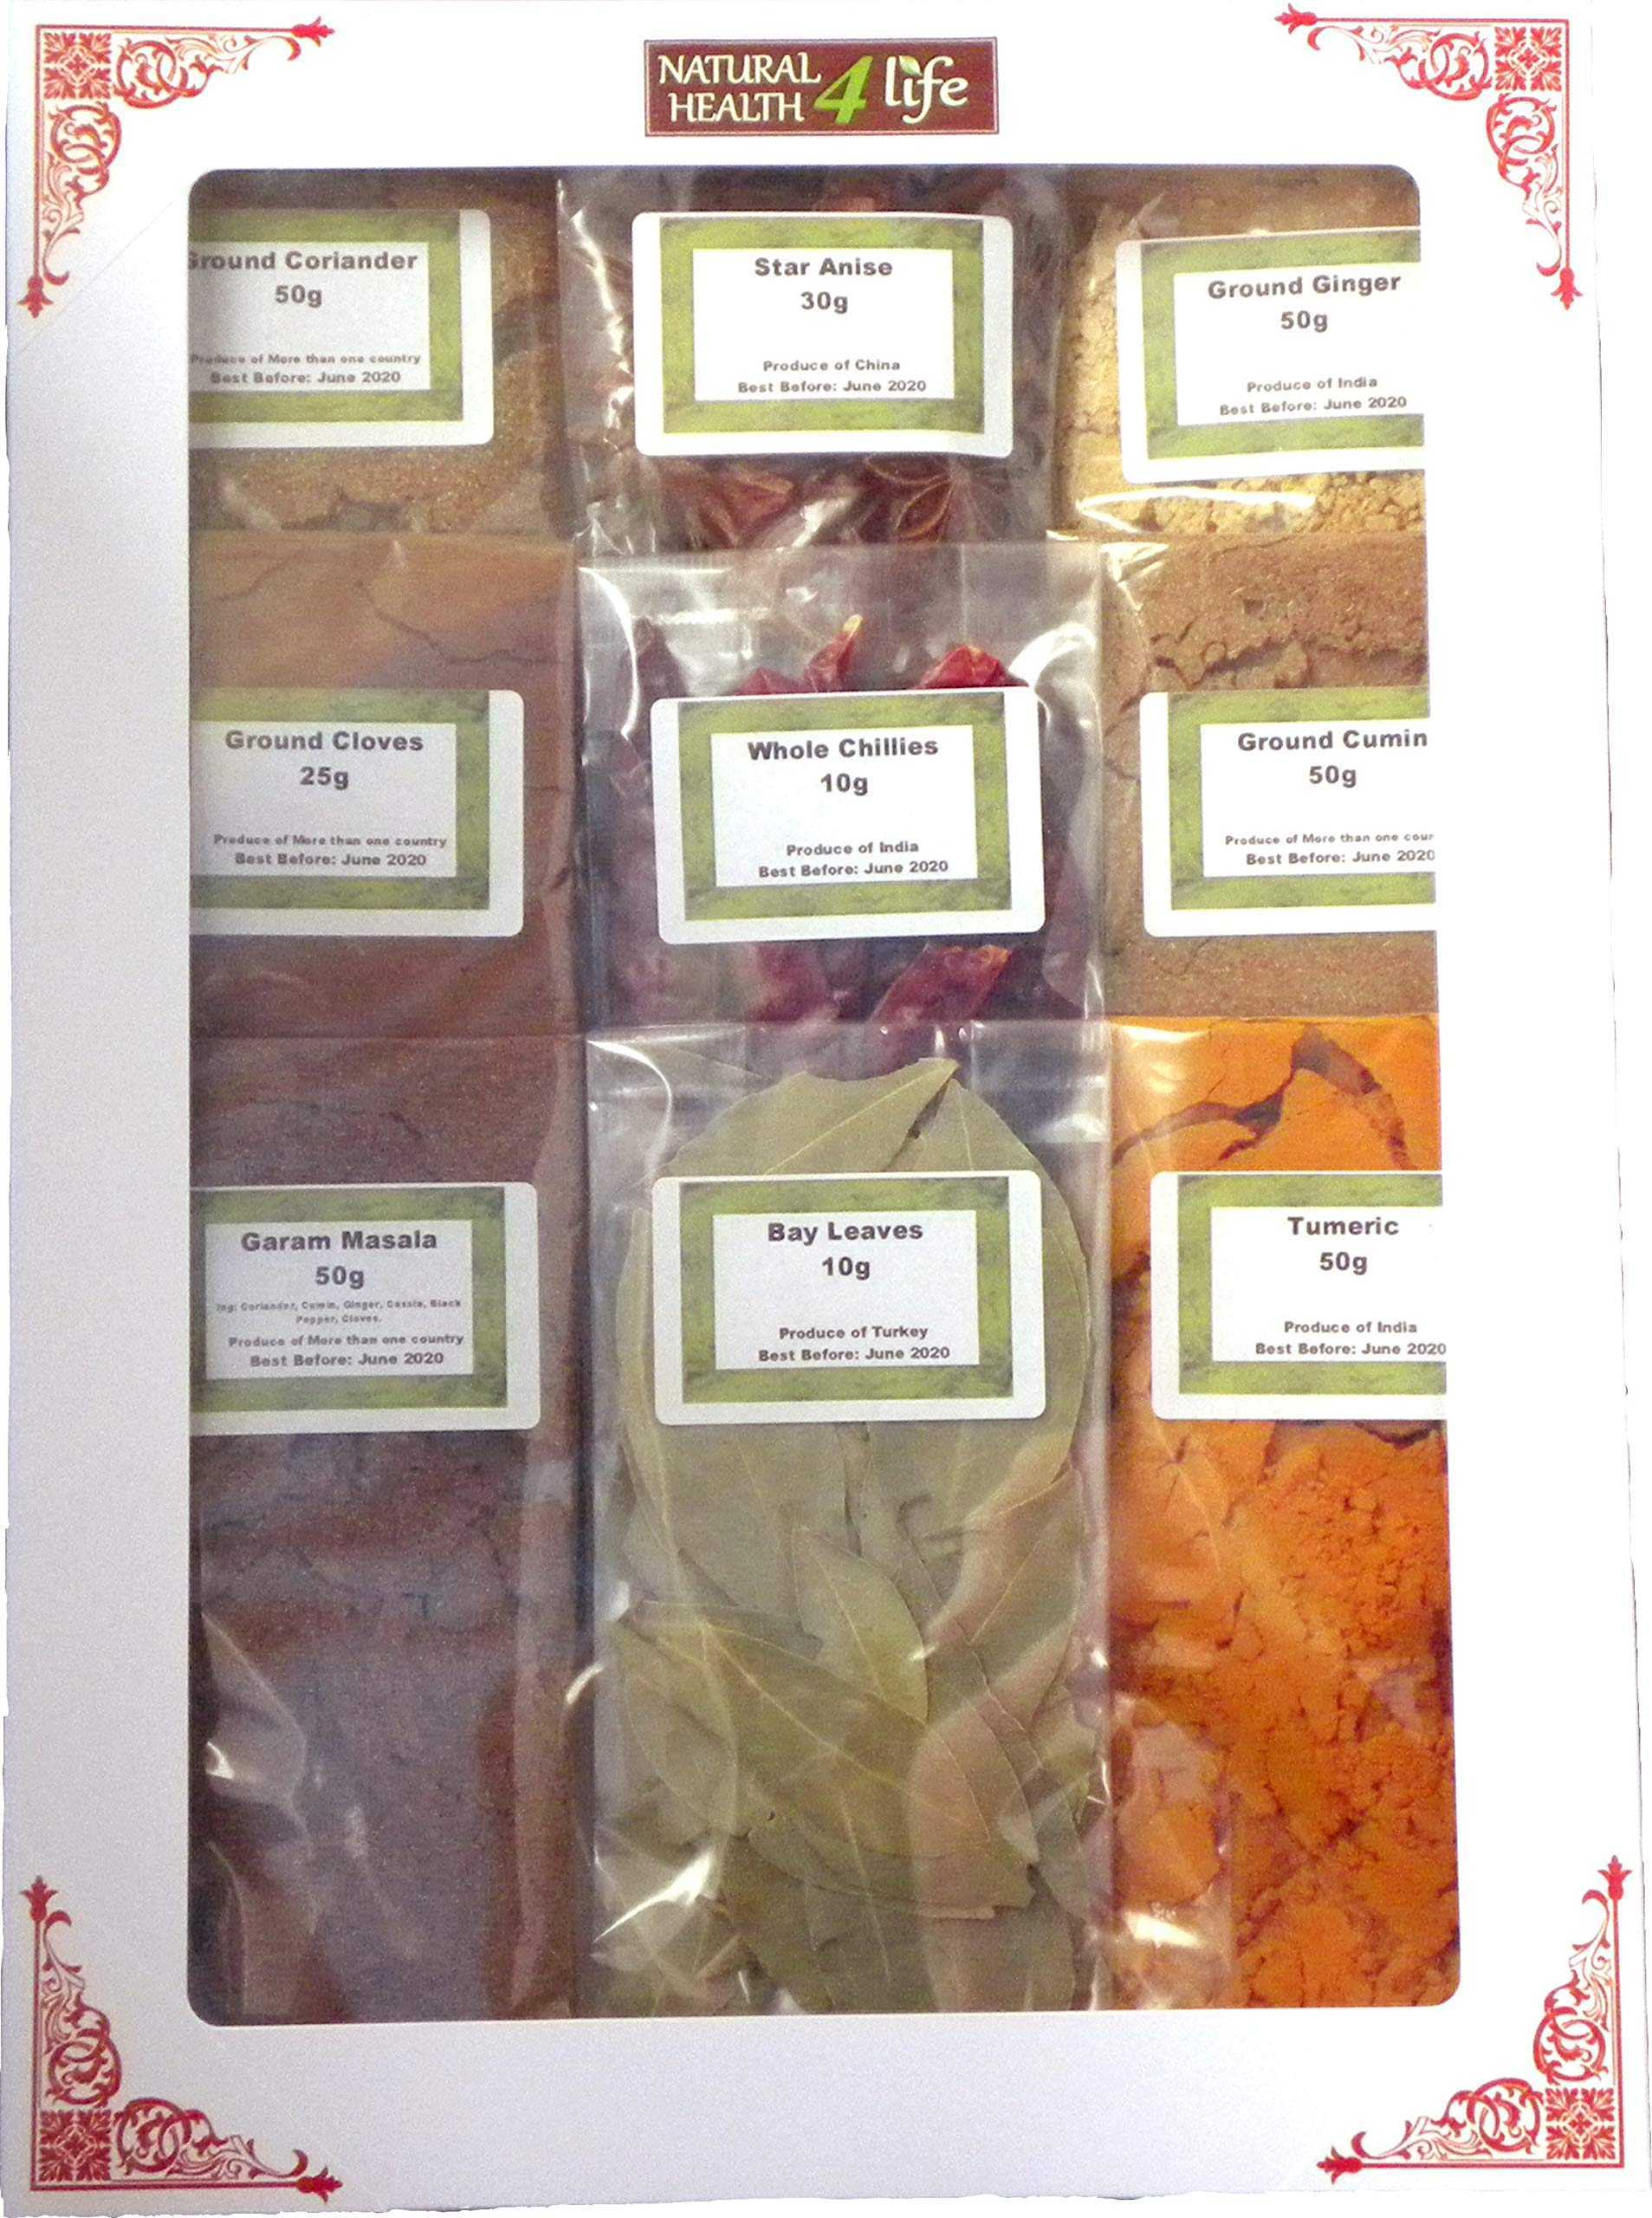 Authentic Indian Spice Gift Set Curry Spice KIT - Makes UP to 24 CURRIES - Quality Spices with Free Post 1